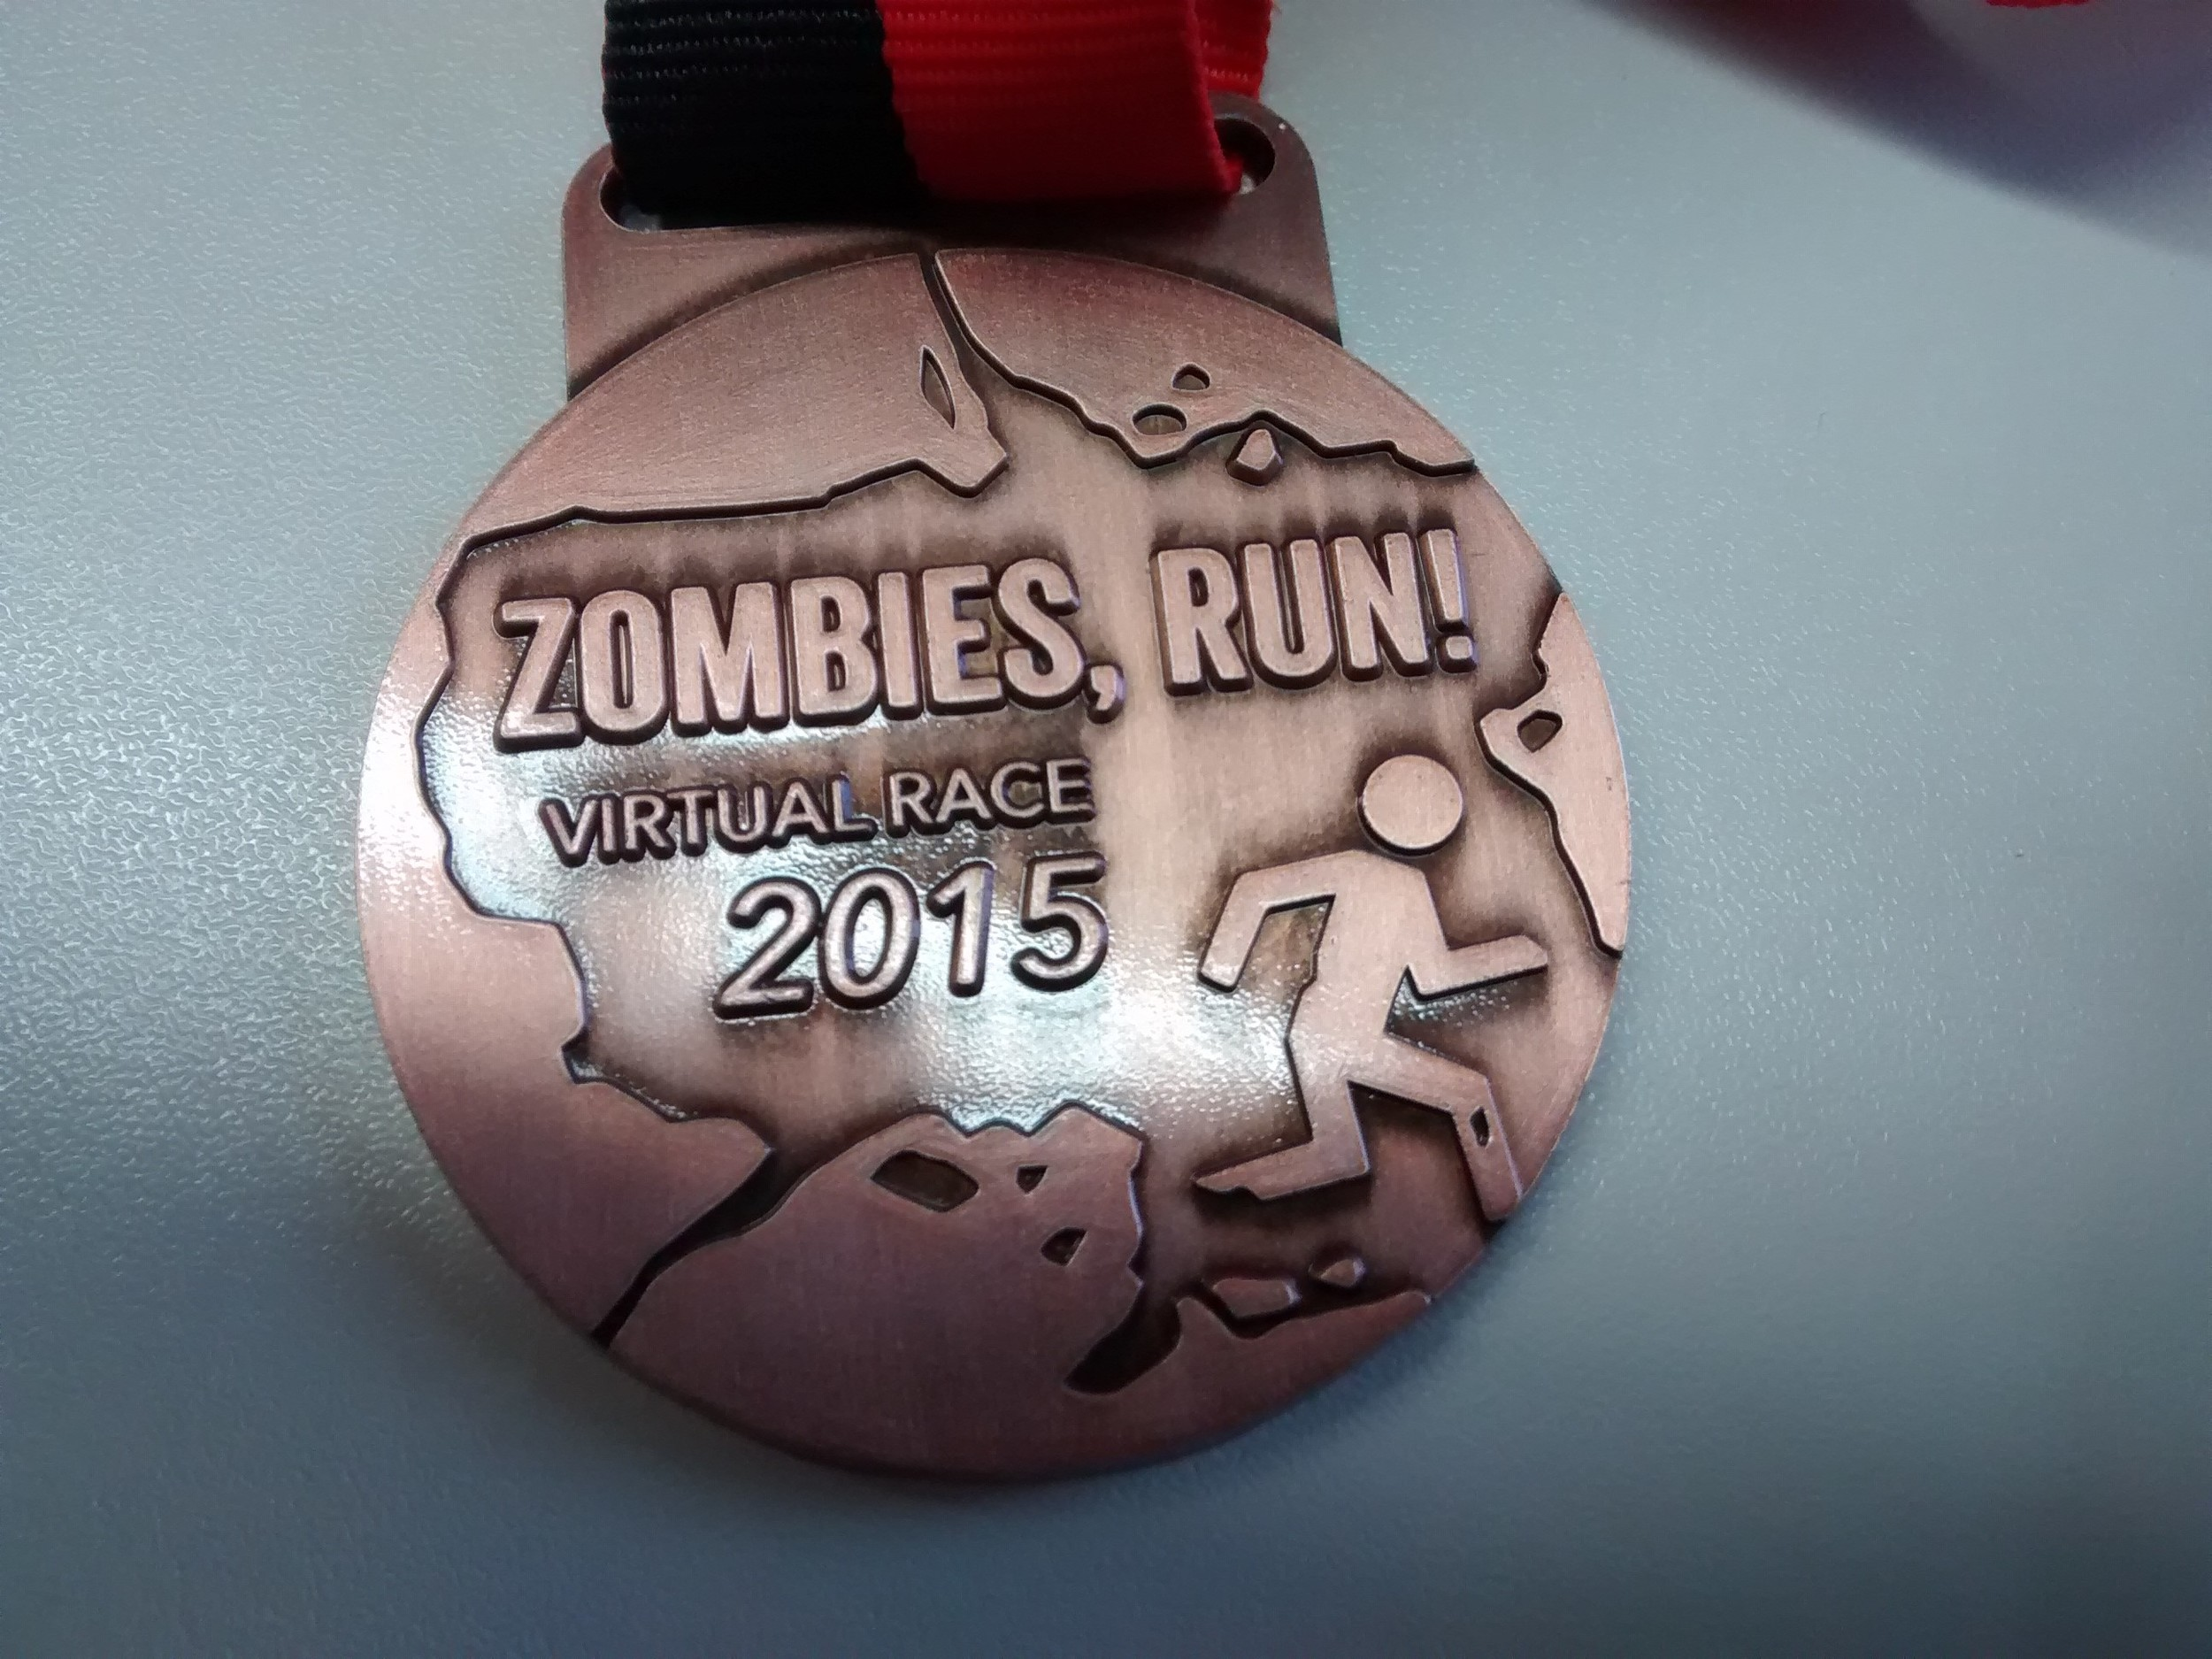 Zombies, Run Virtual Race